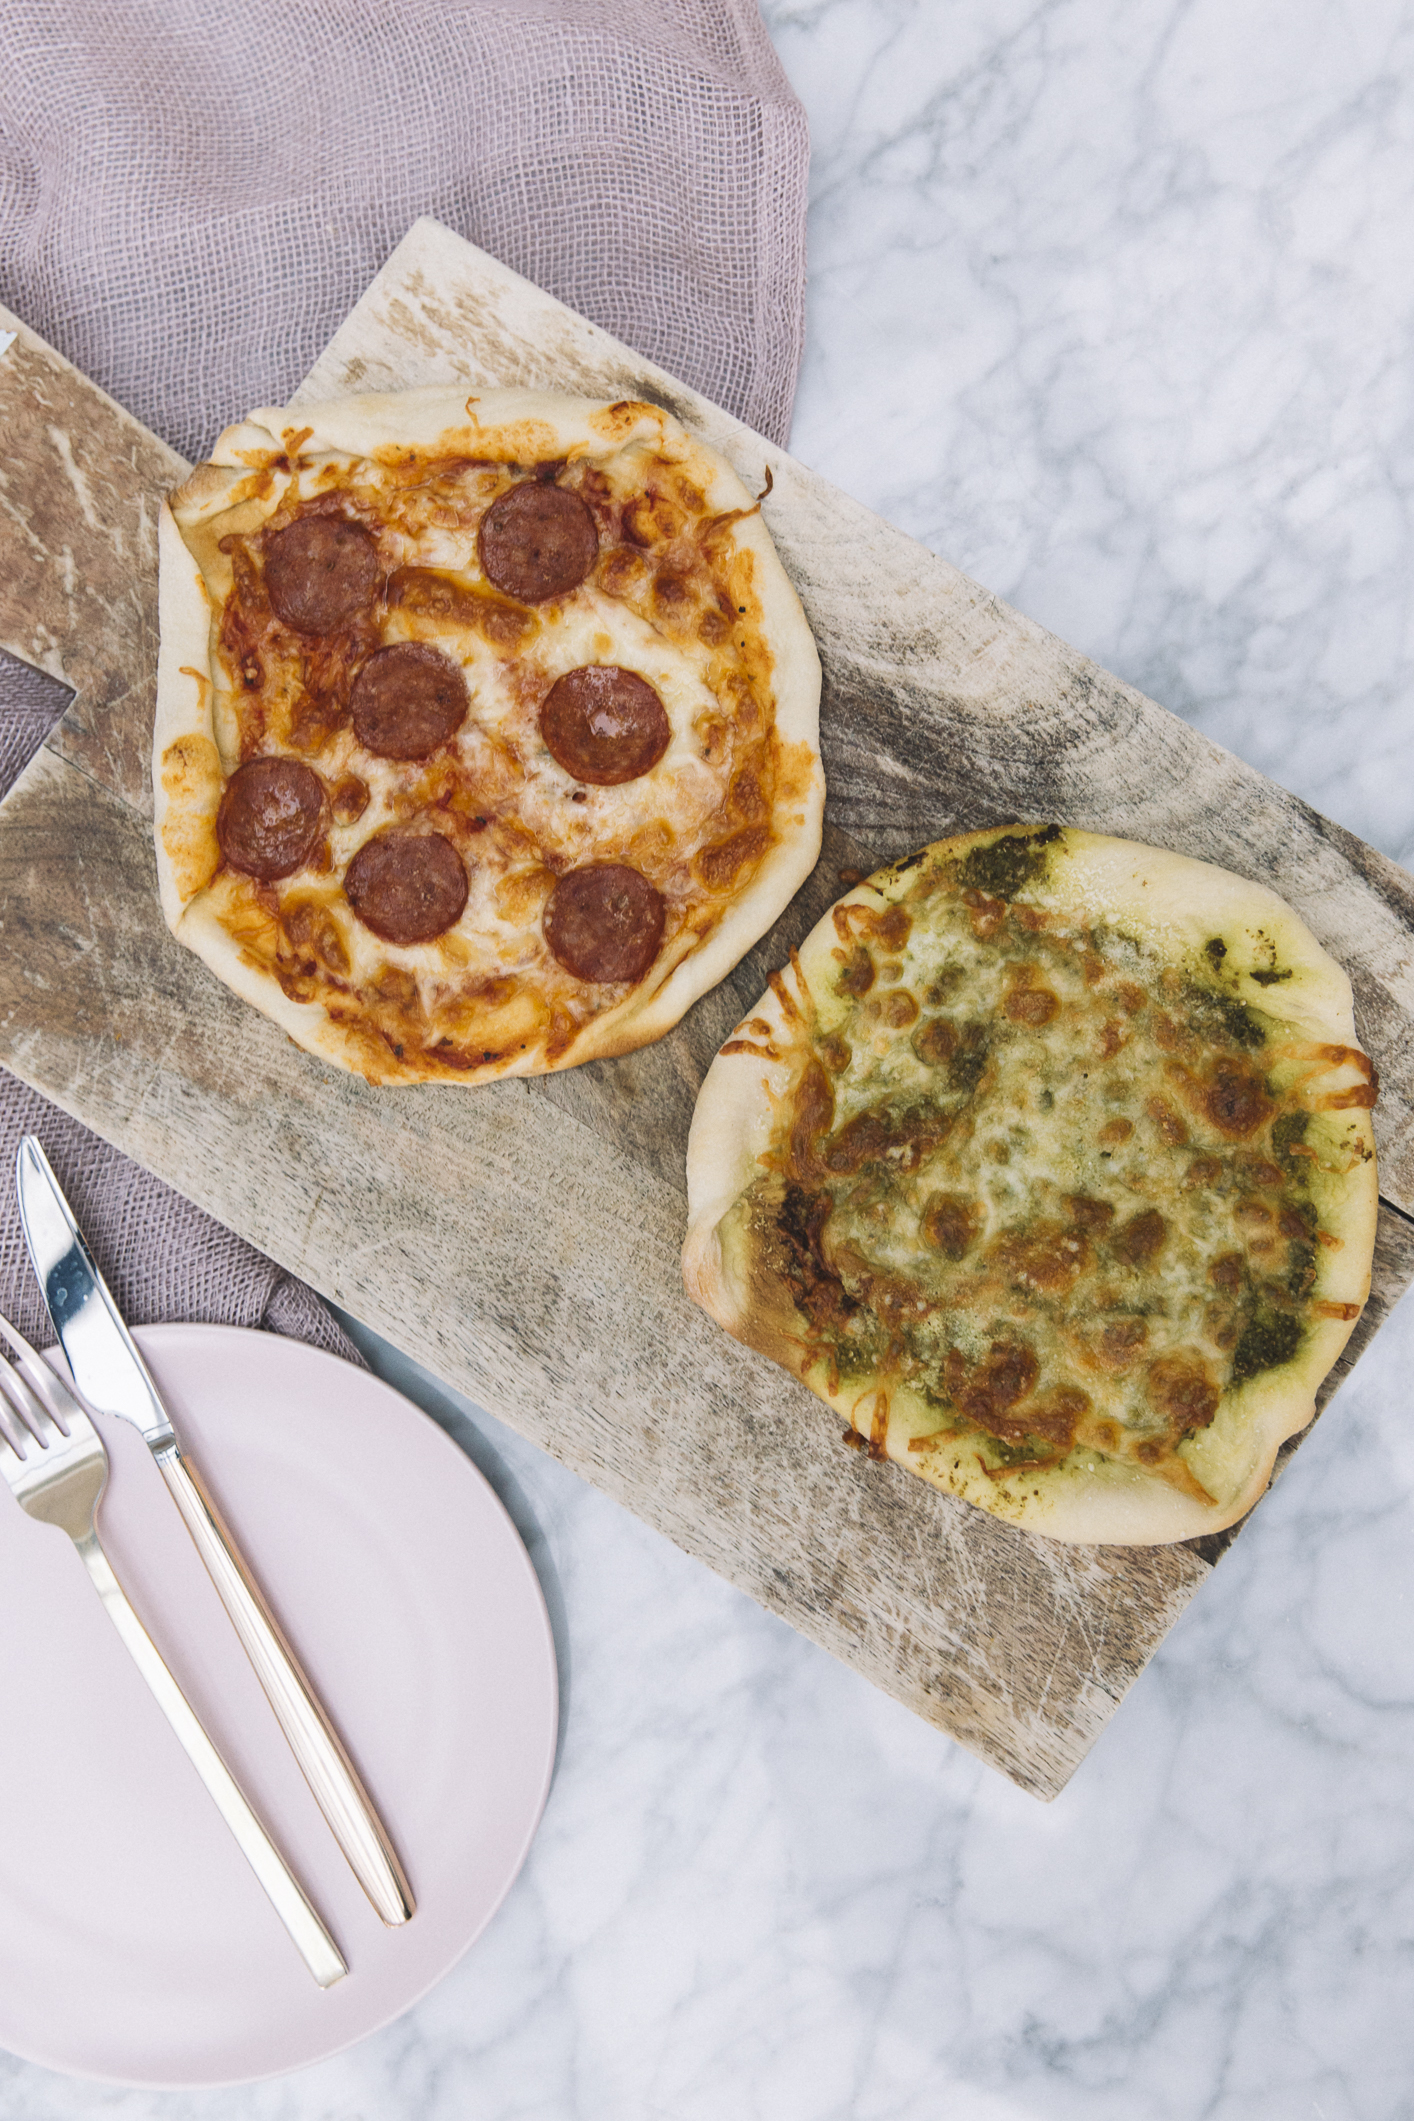 This National Pizza Day, Make Your Own!